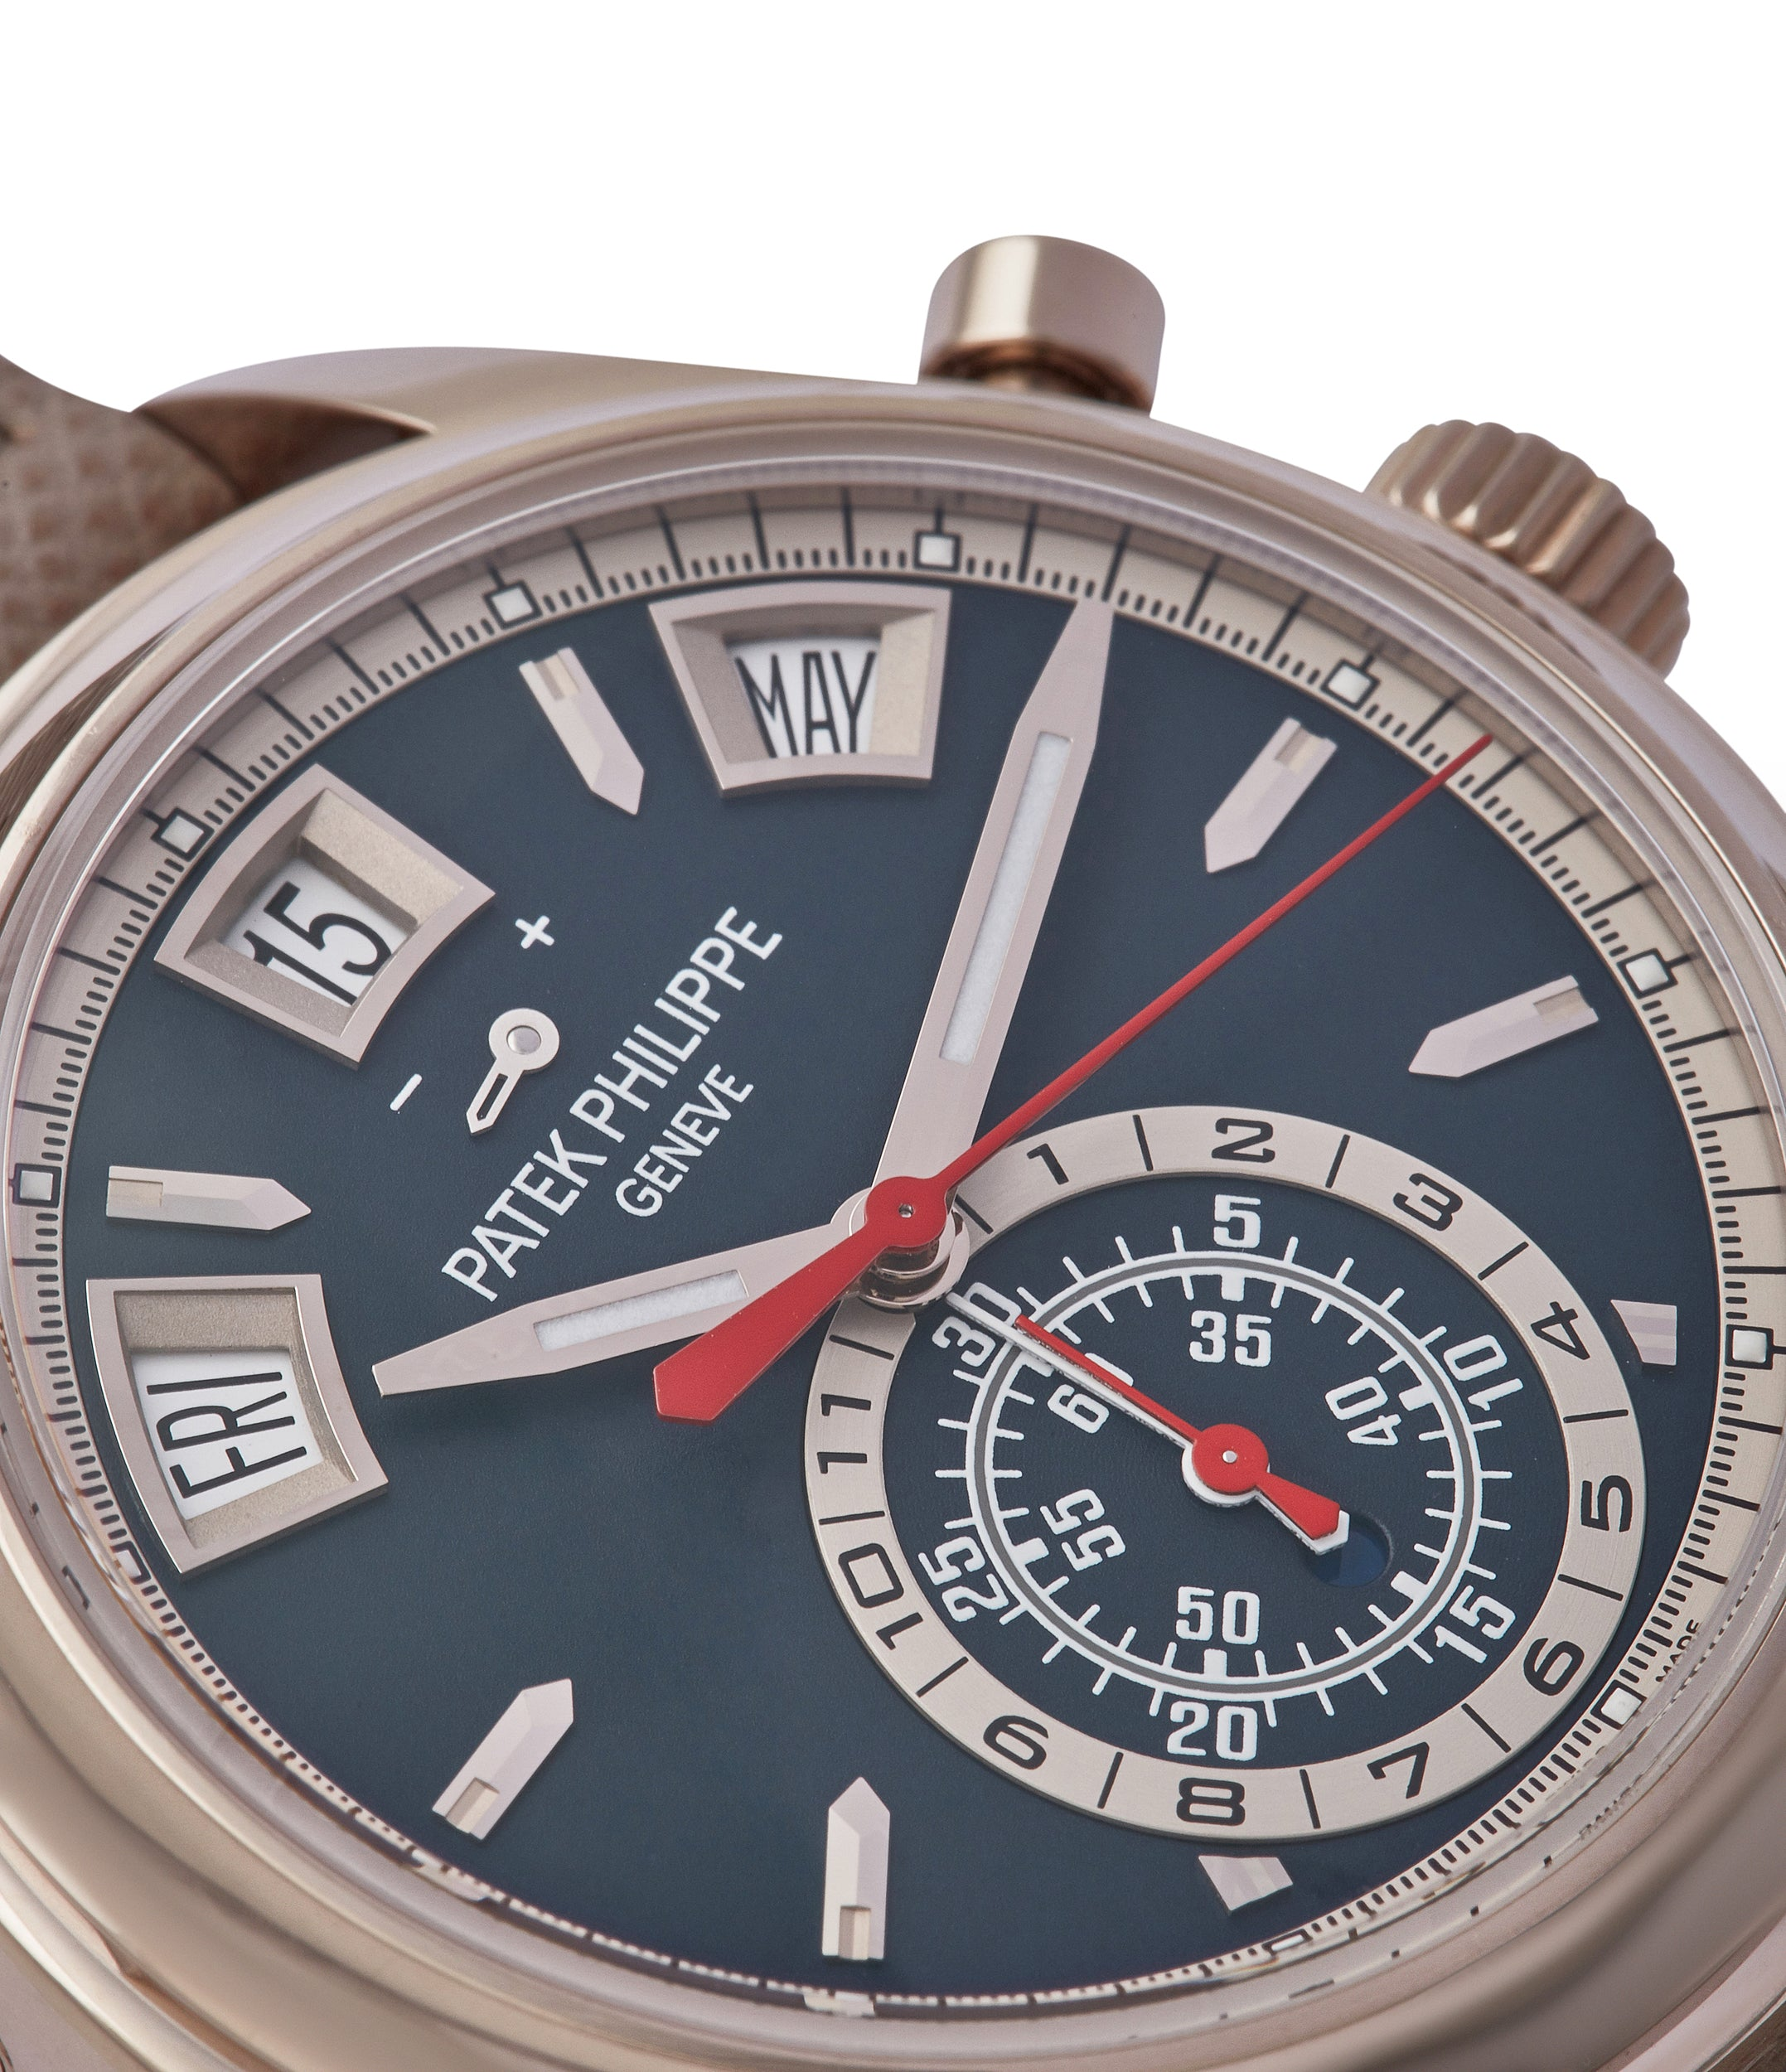 blue dial Patek Philippe 5960-01G Annual Calendar Flyback Chronograph pre-owned watch at A Collected Man London